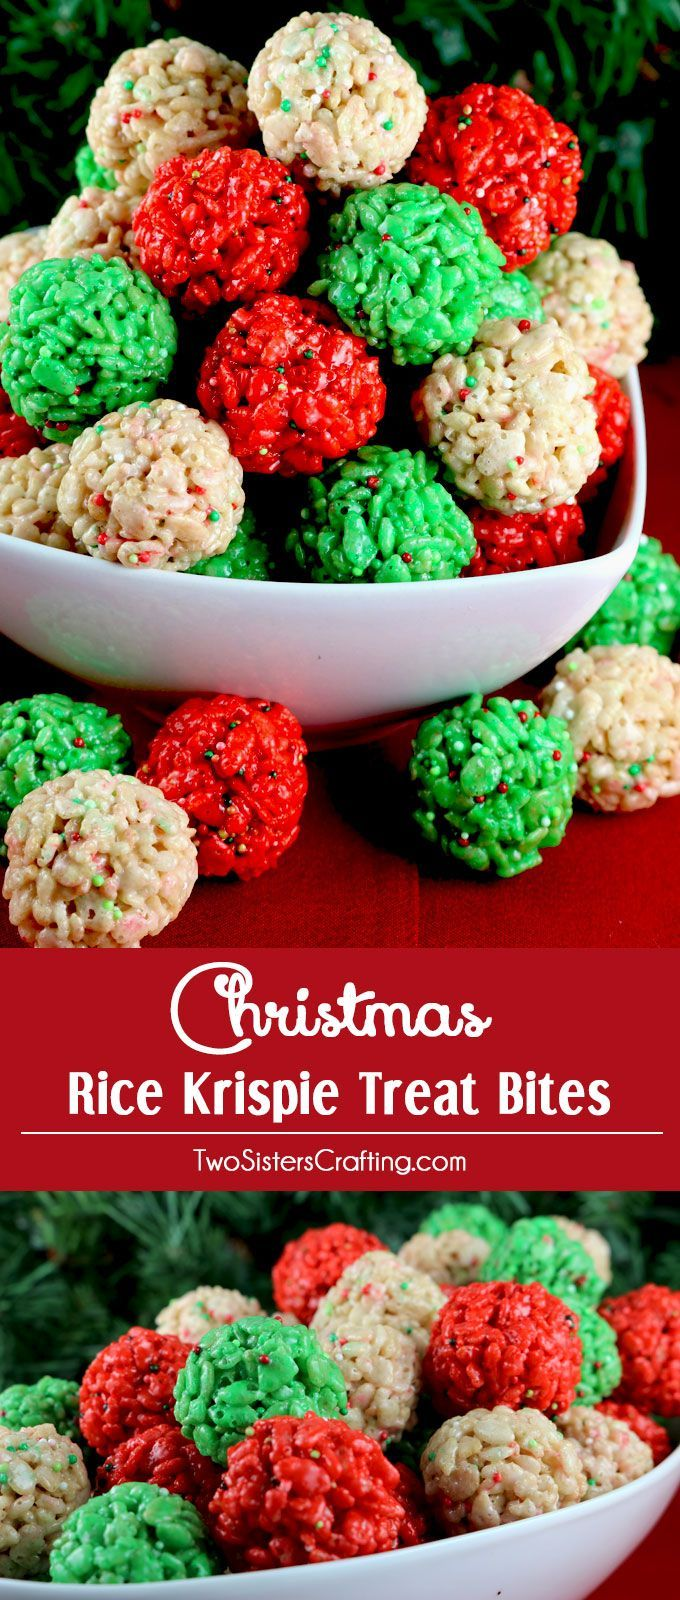 Christmas Rice Krispie Treat Bites